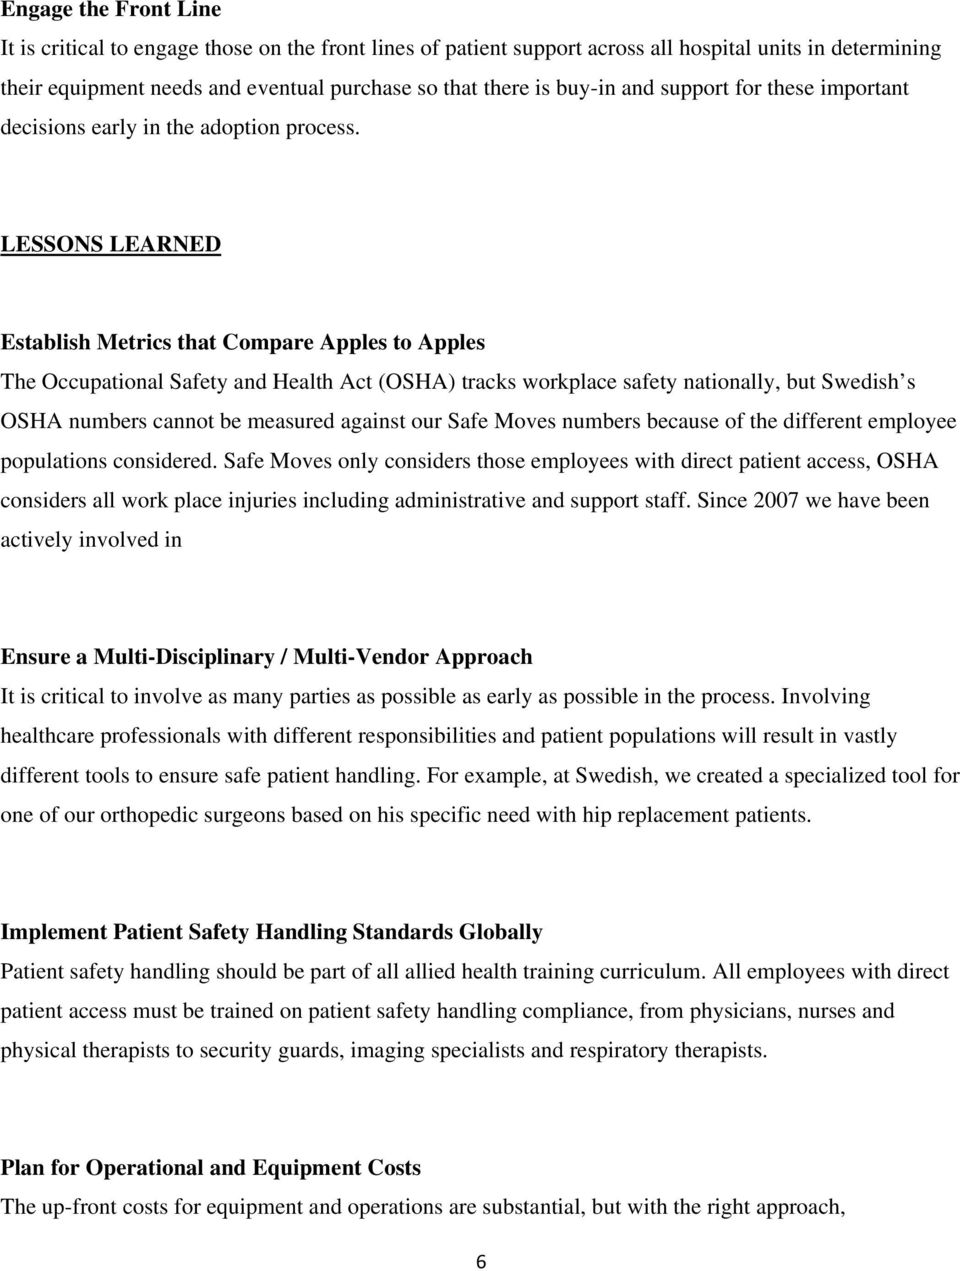 LESSONS LEARNED Establish Metrics that Compare Apples to Apples The Occupational Safety and Health Act (OSHA) tracks workplace safety nationally, but Swedish s OSHA numbers cannot be measured against